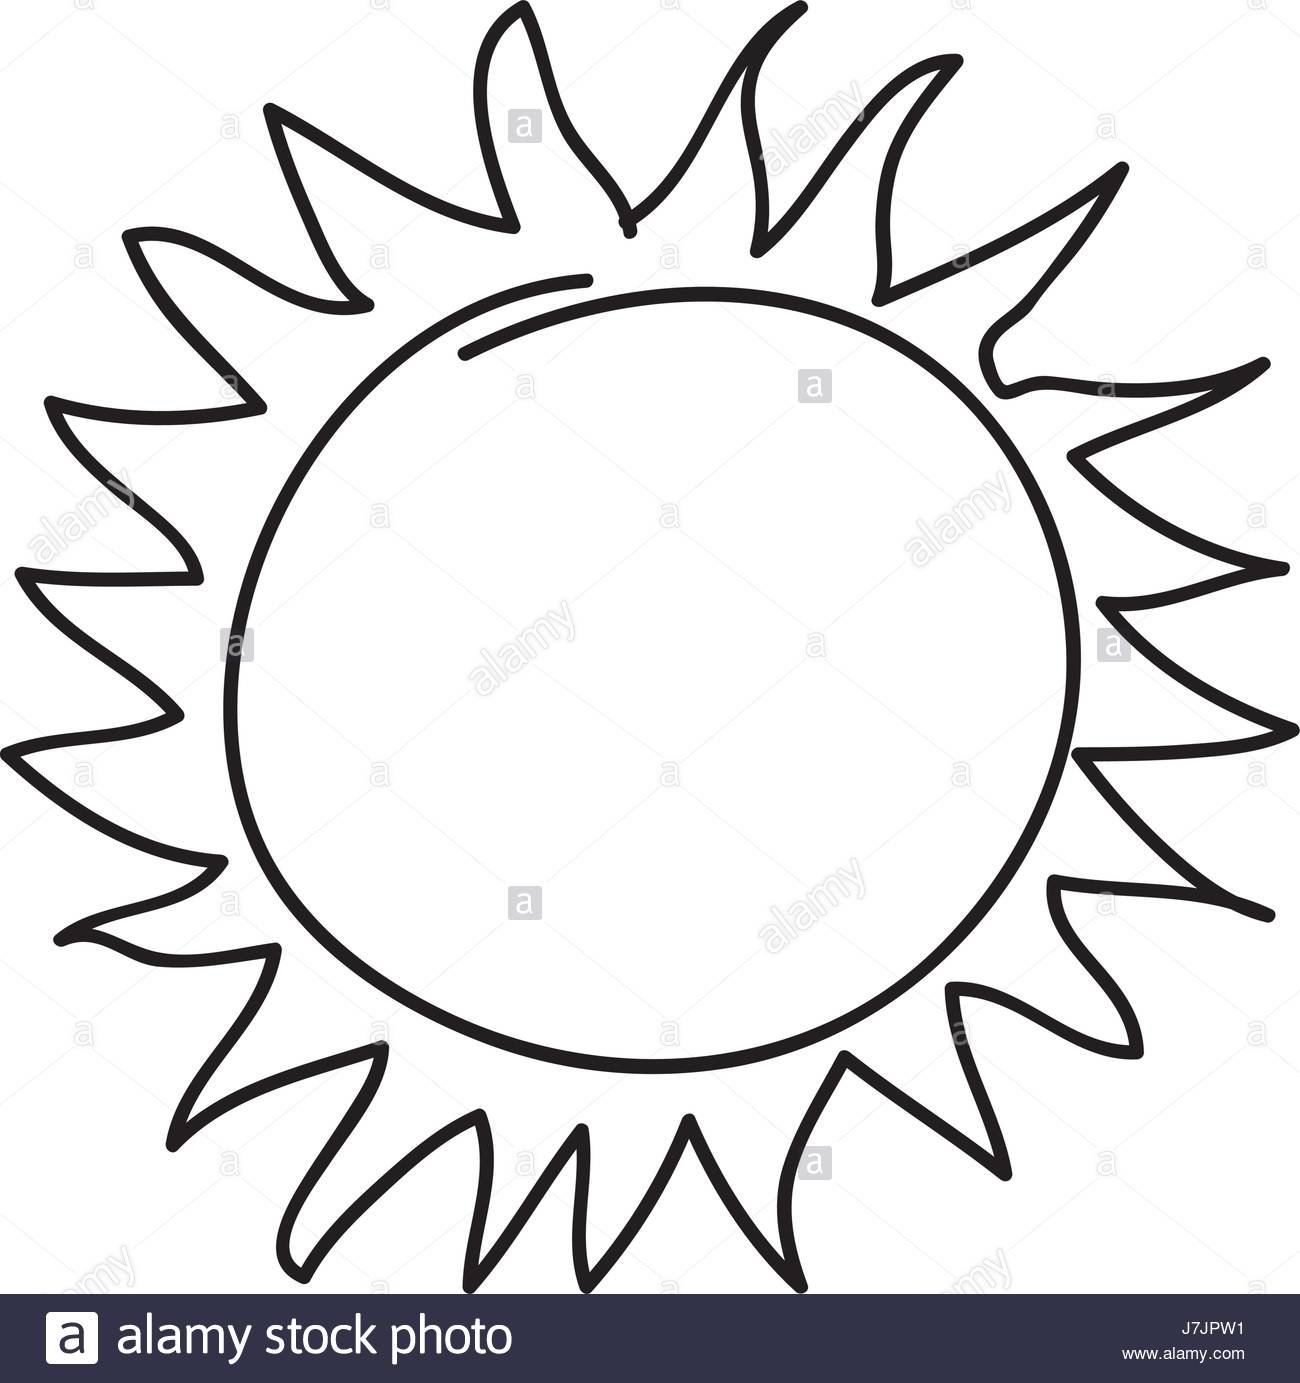 1300x1383 Summer Sun Drawing Icon Stock Vector Art Amp Illustration, Vector